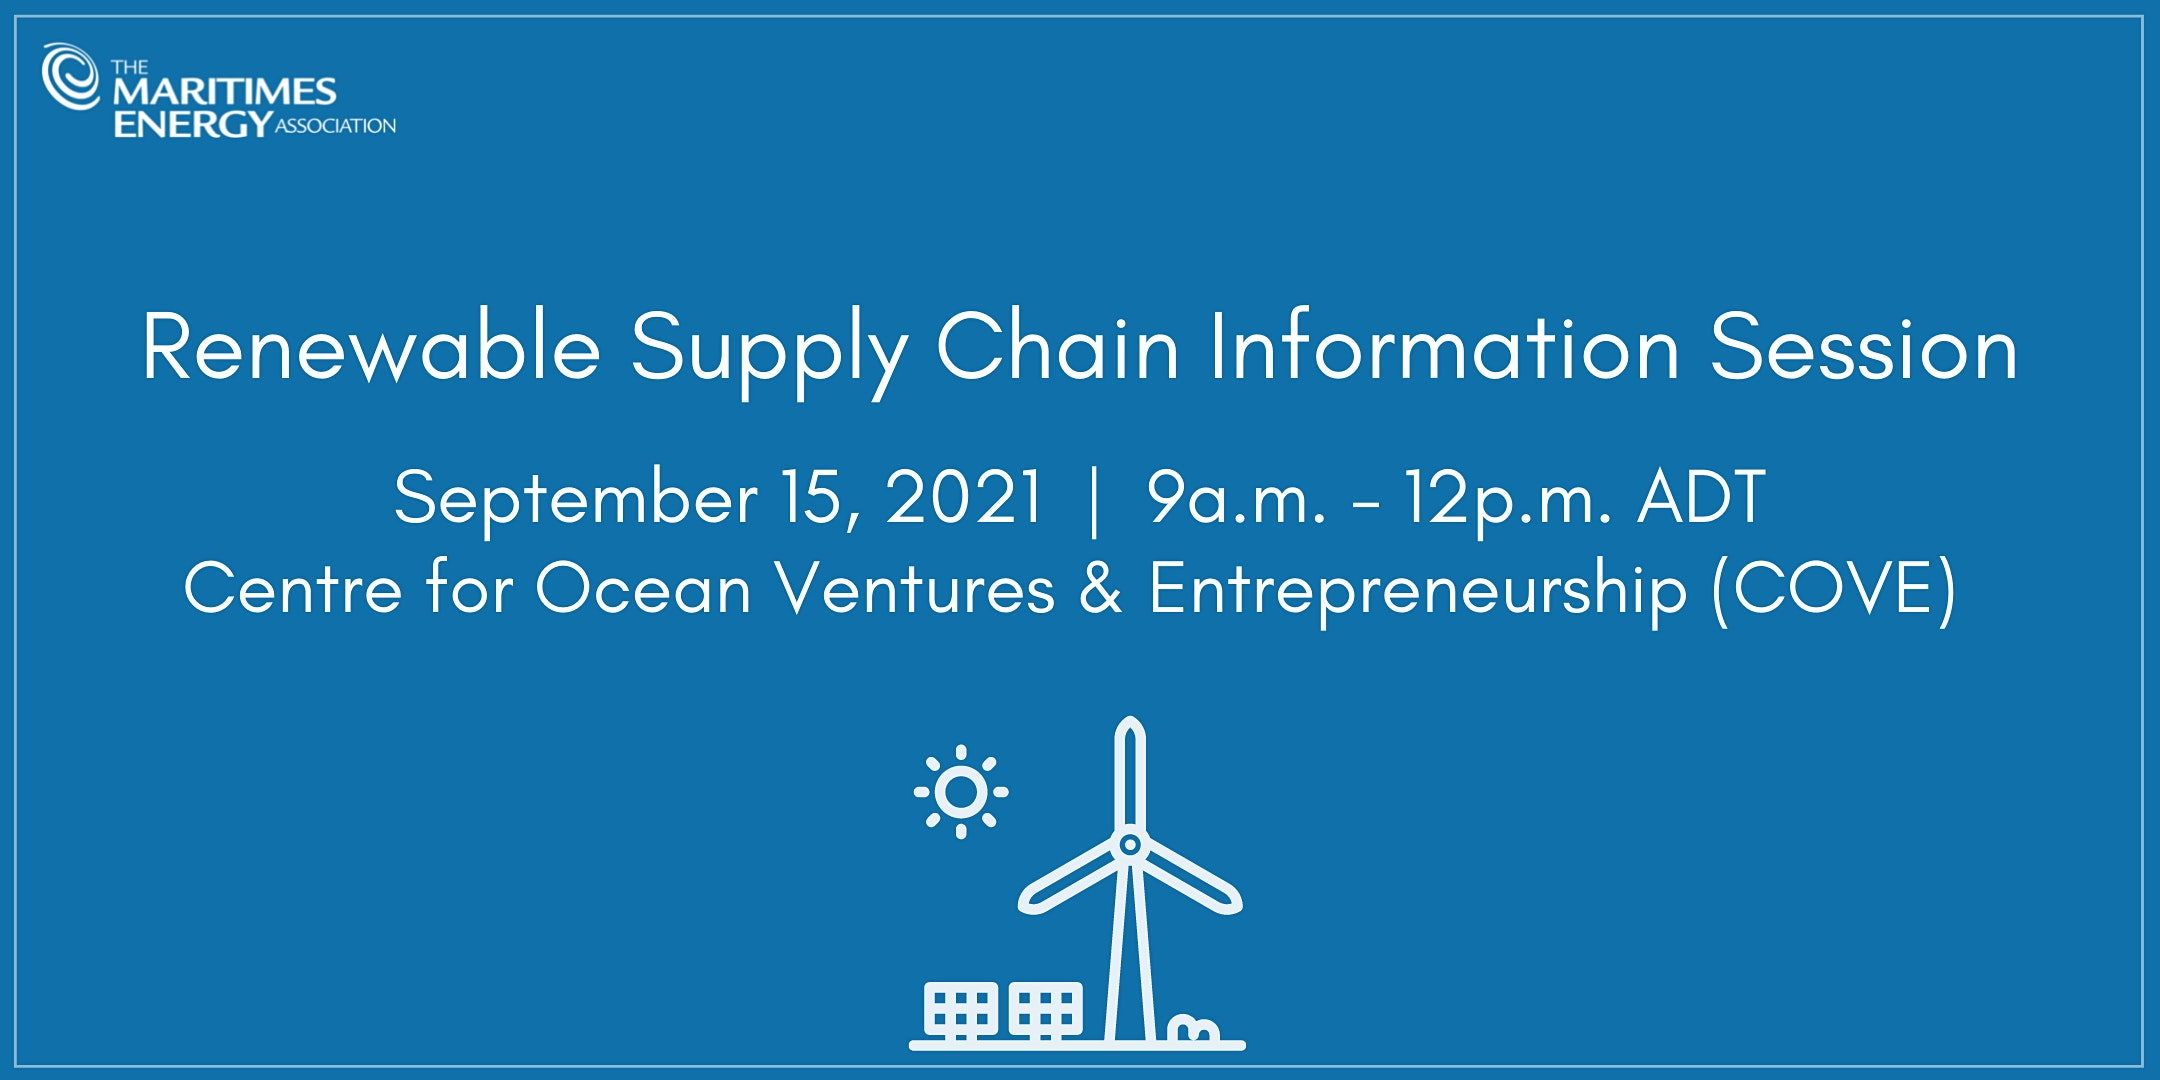 Renewable Supply Chain Information Session